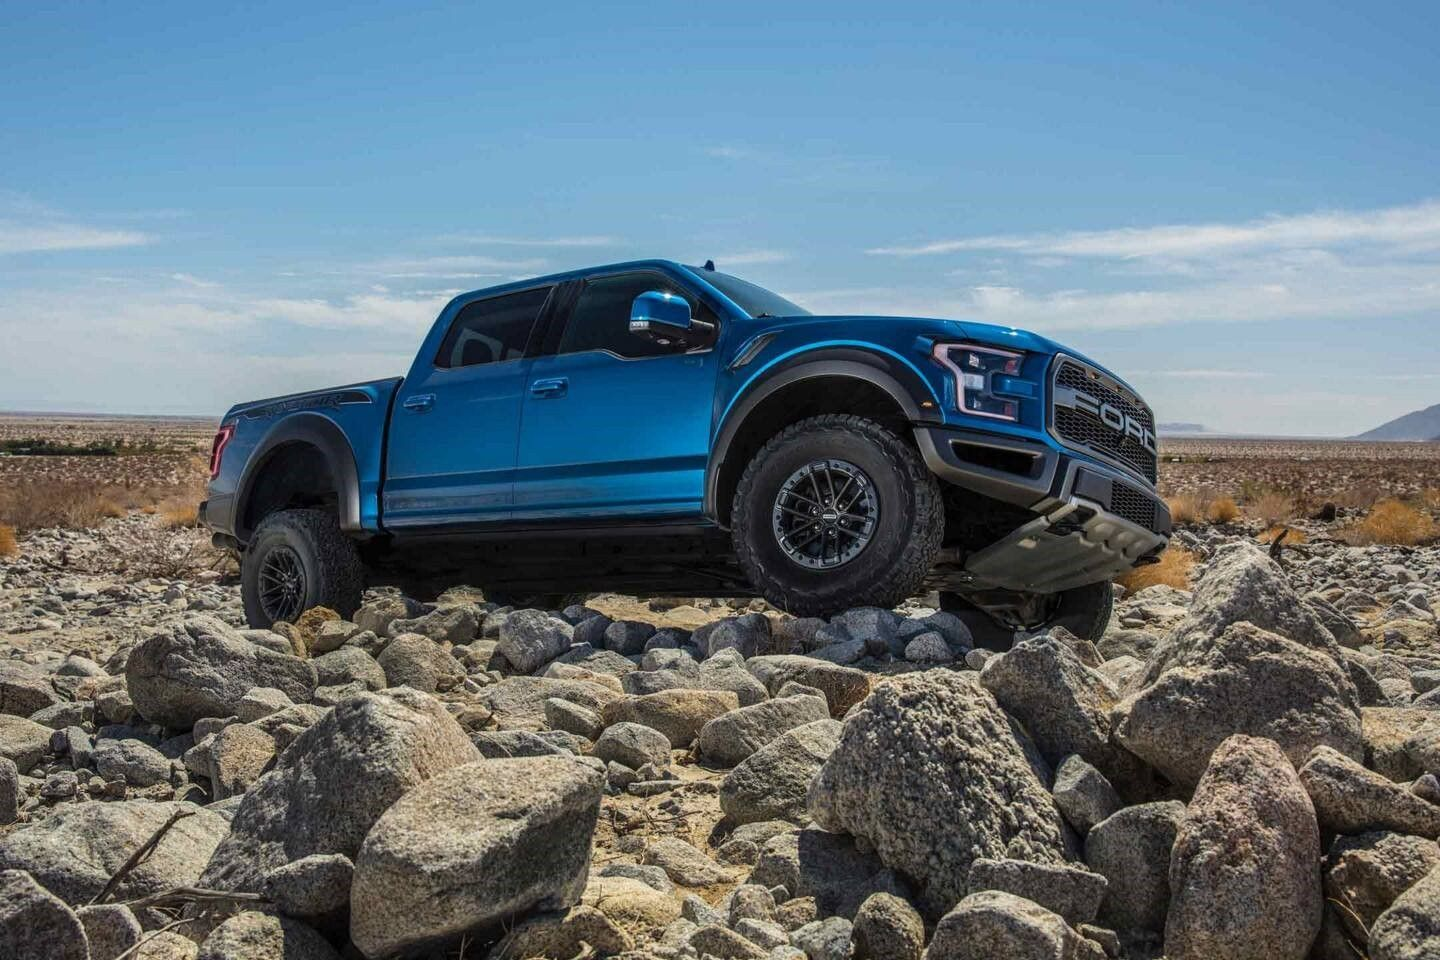 Stop By Ts S Ford To Compare The 2020 Ford Raptor Near Prineville Or Vs The Standard Ford F 150 Both Models Feature A Stunn Raptor Truck Ford F150 Ford Raptor